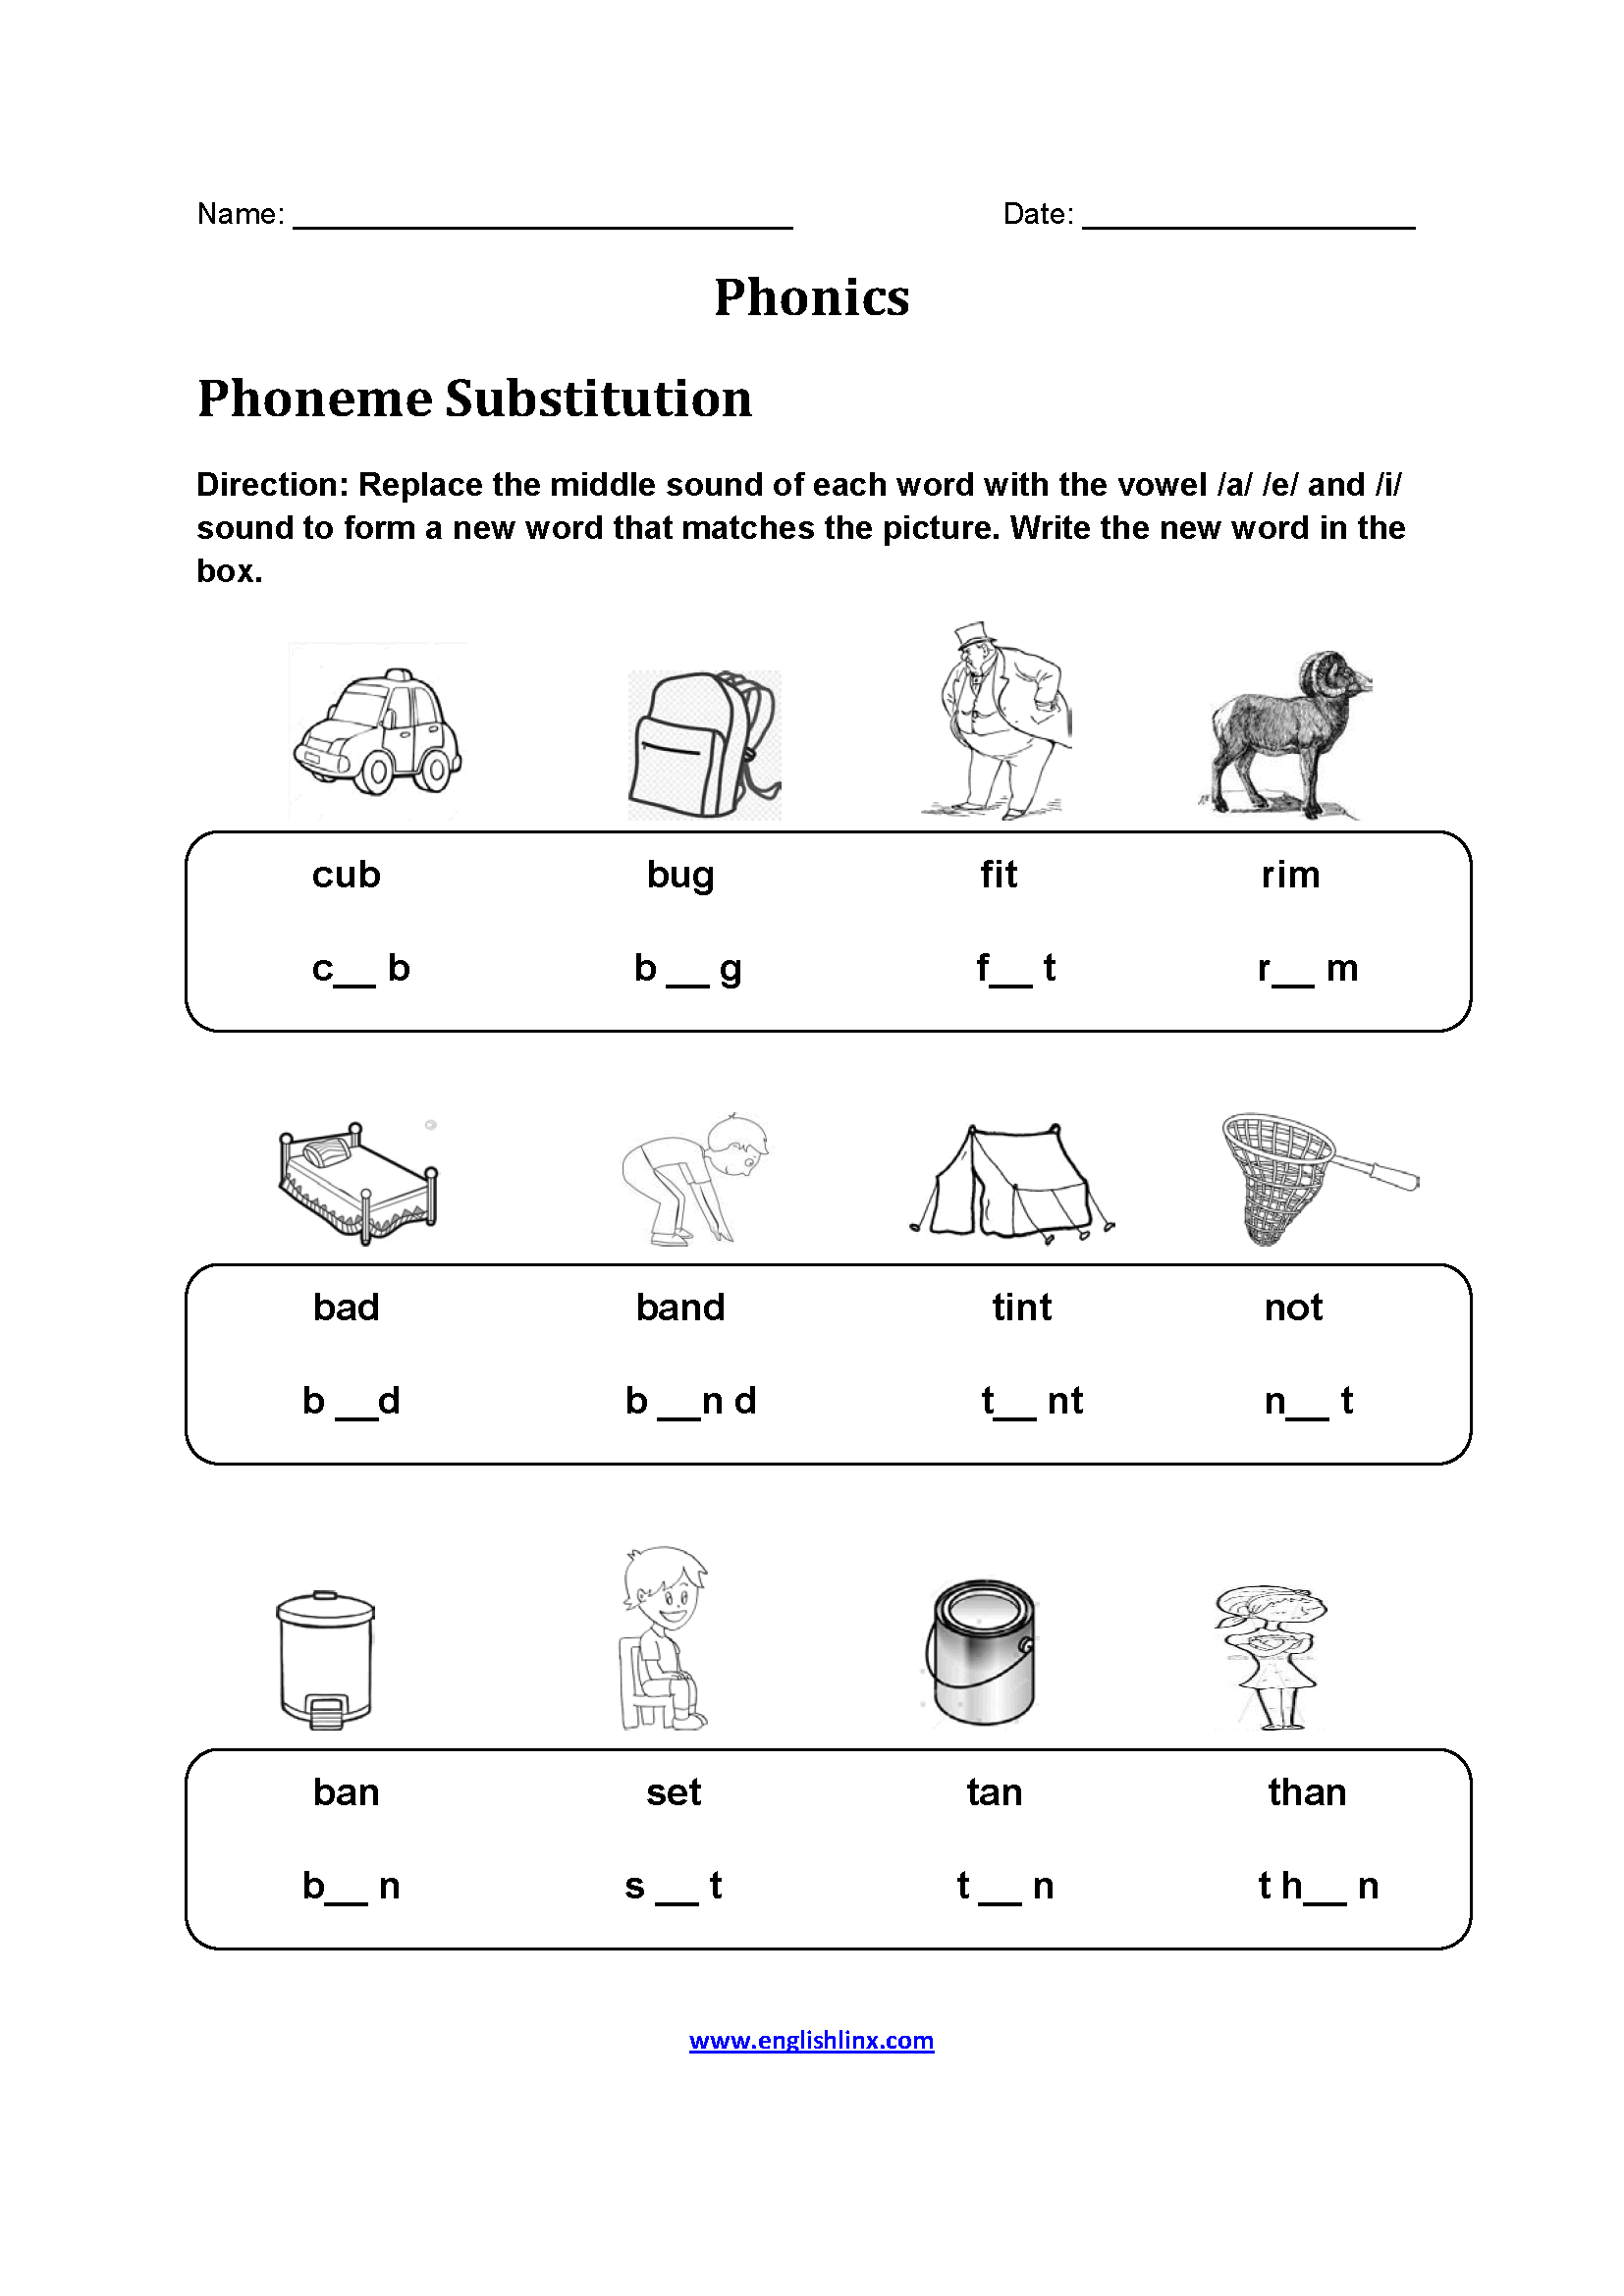 Phoneme Substitution Phonics Worksheets